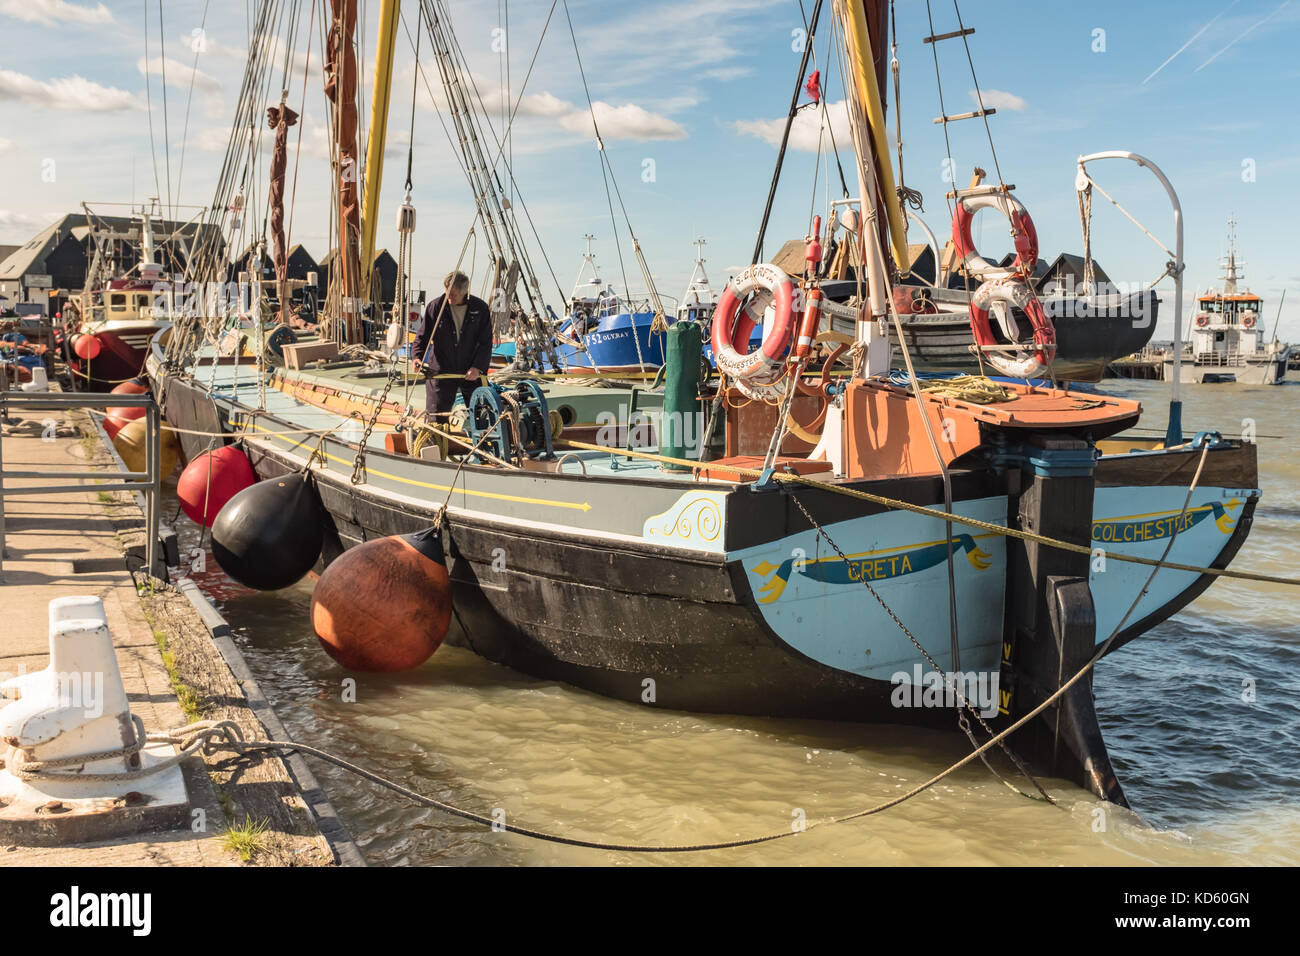 Whitstable, UK - OCT 5 2017.  A very high tide in Whitstable harbour as the Thames barge 'Greta' is moored - Stock Image